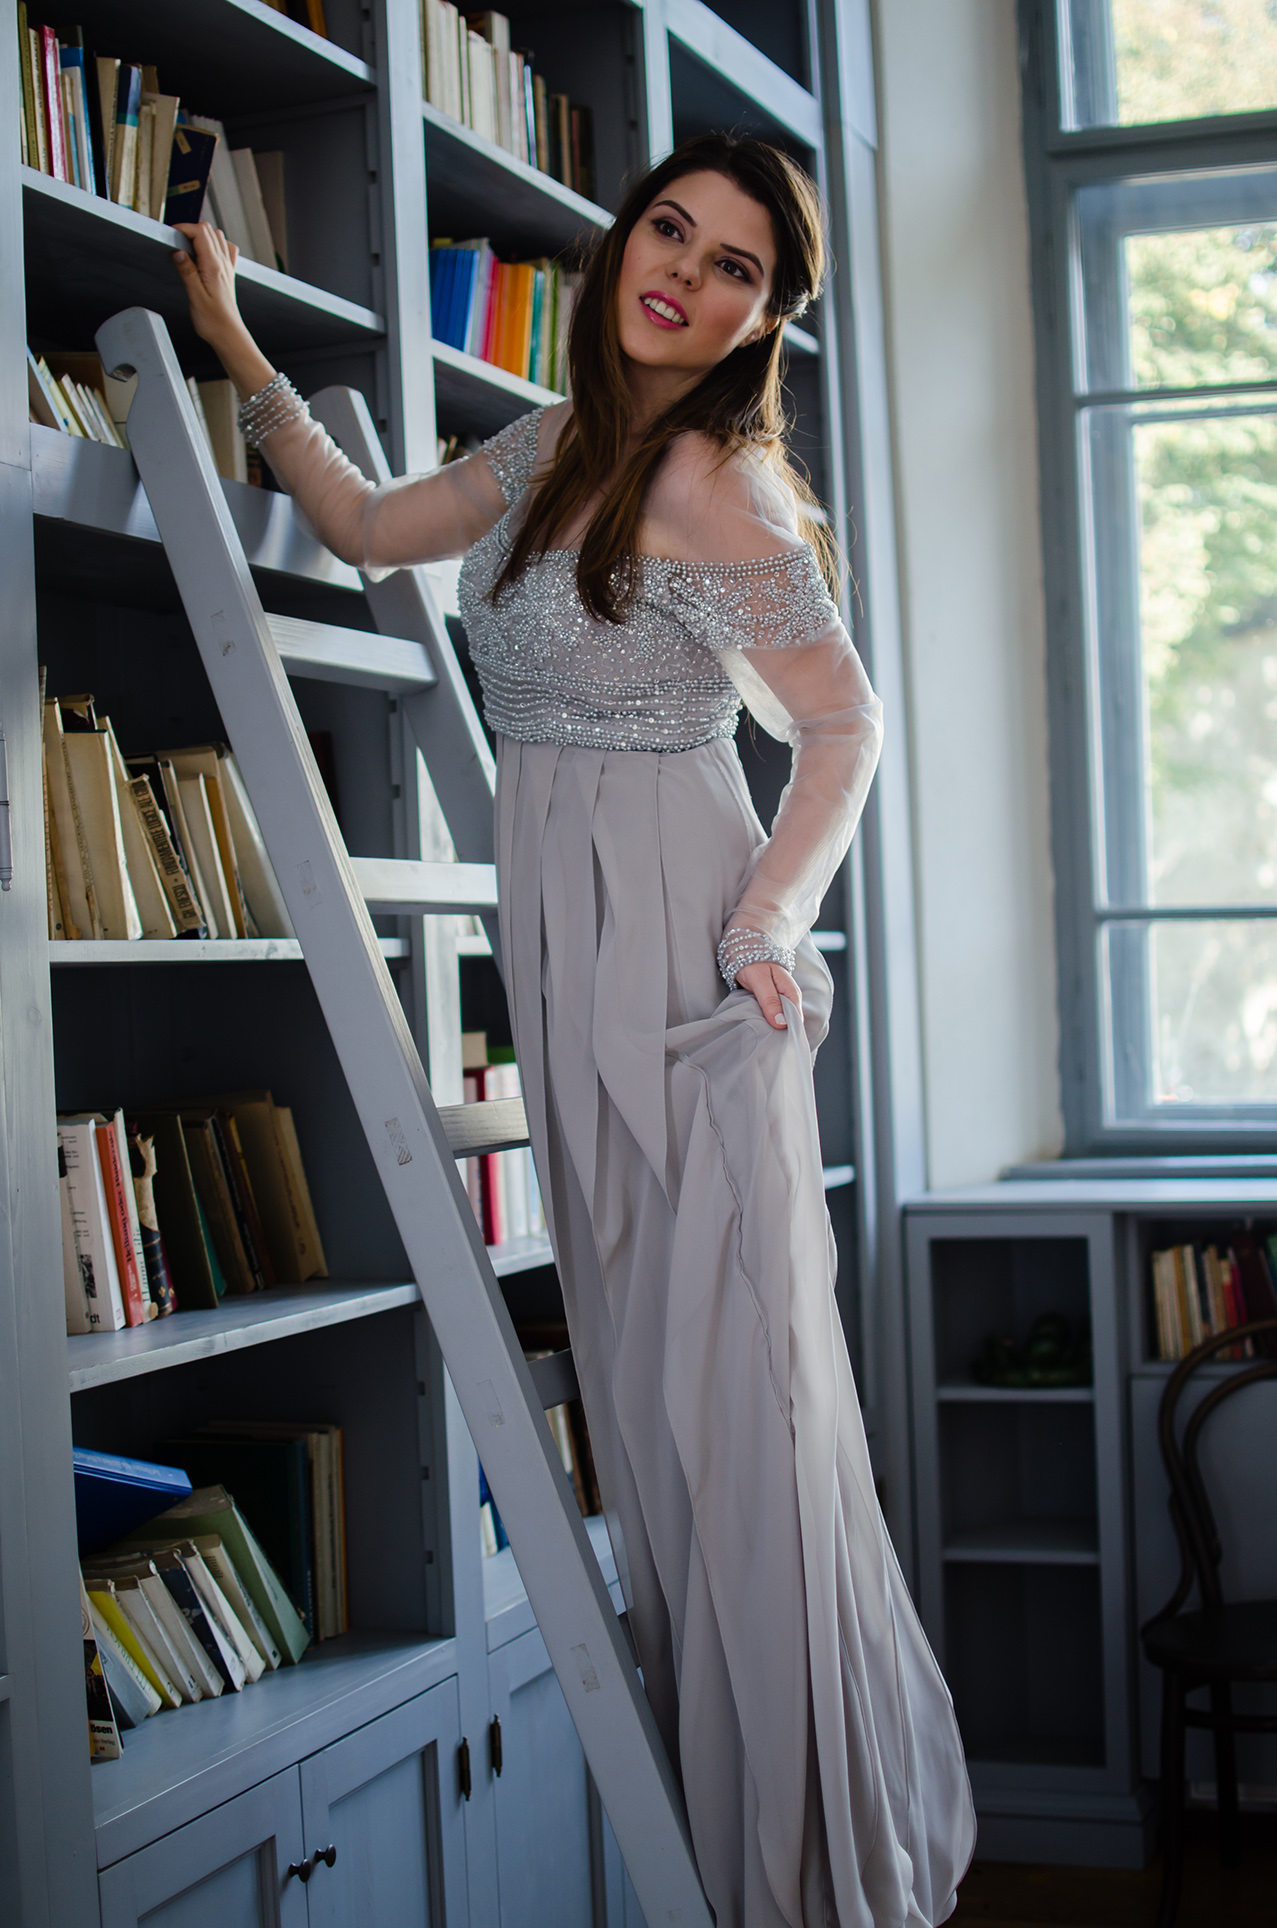 dreamy-library-photoshoot